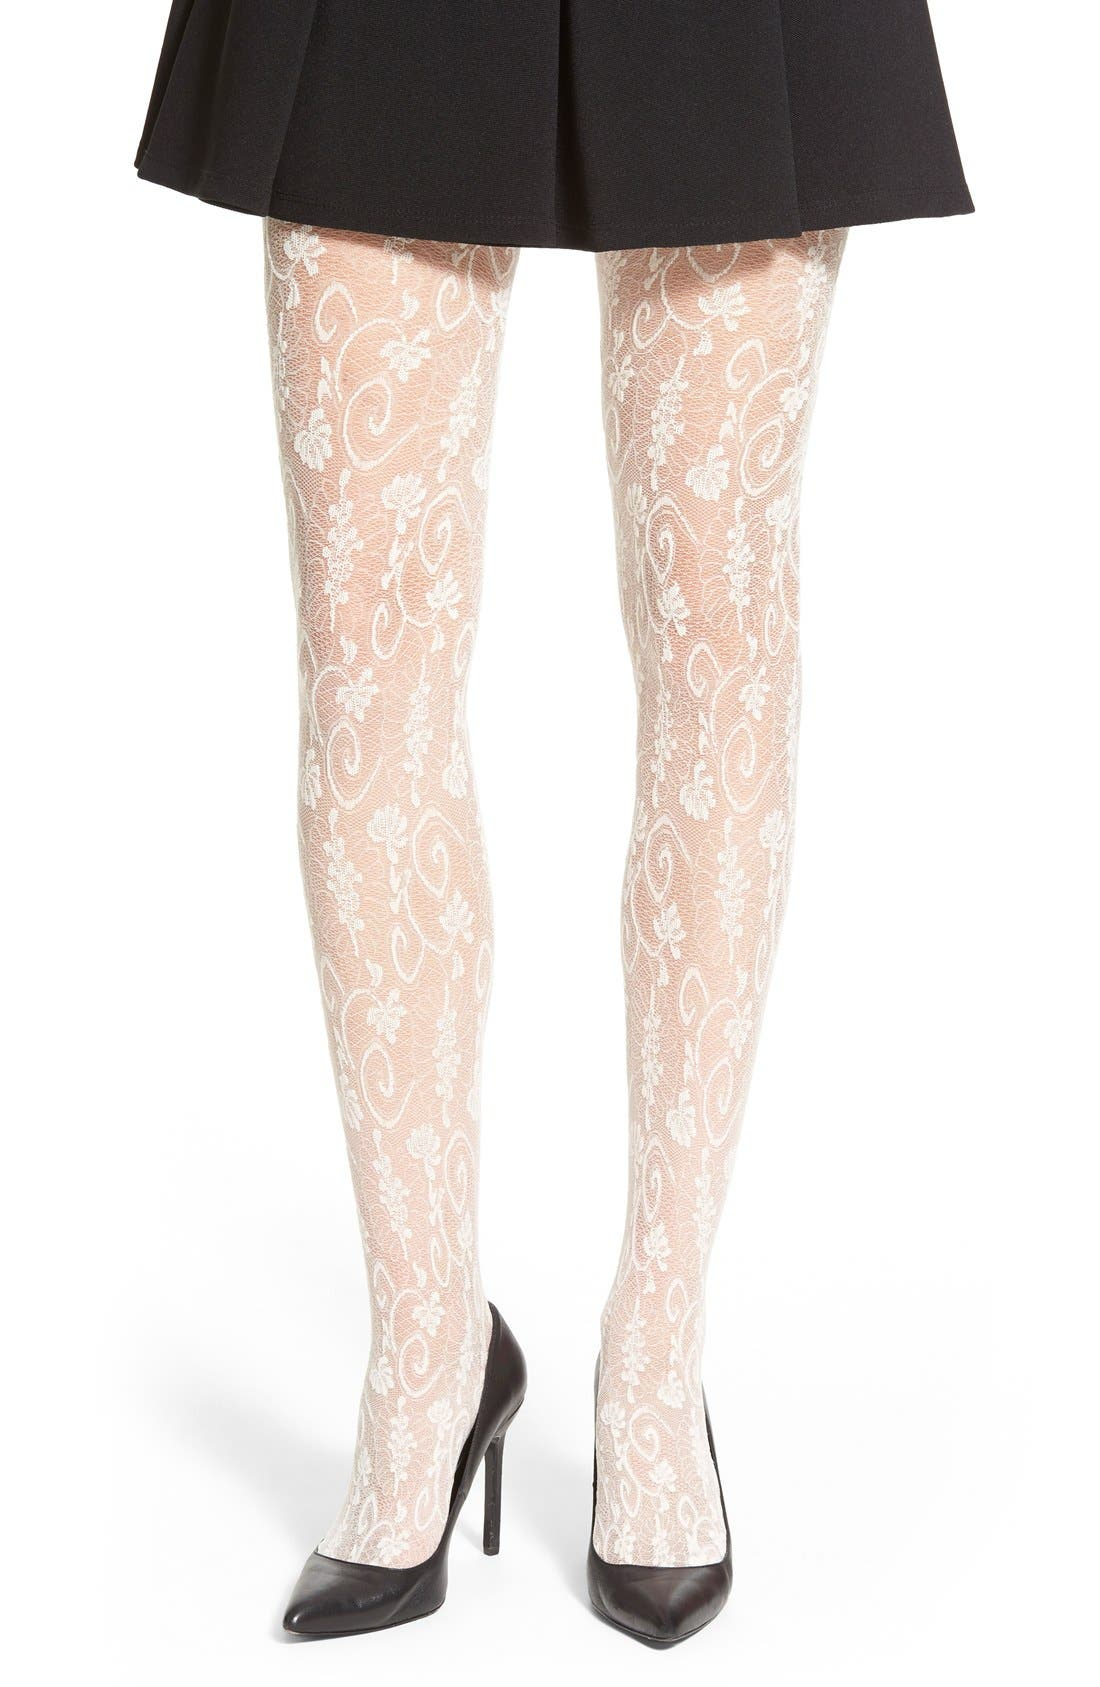 'Estella' Floral Lace Tights,                         Main,                         color, Wool